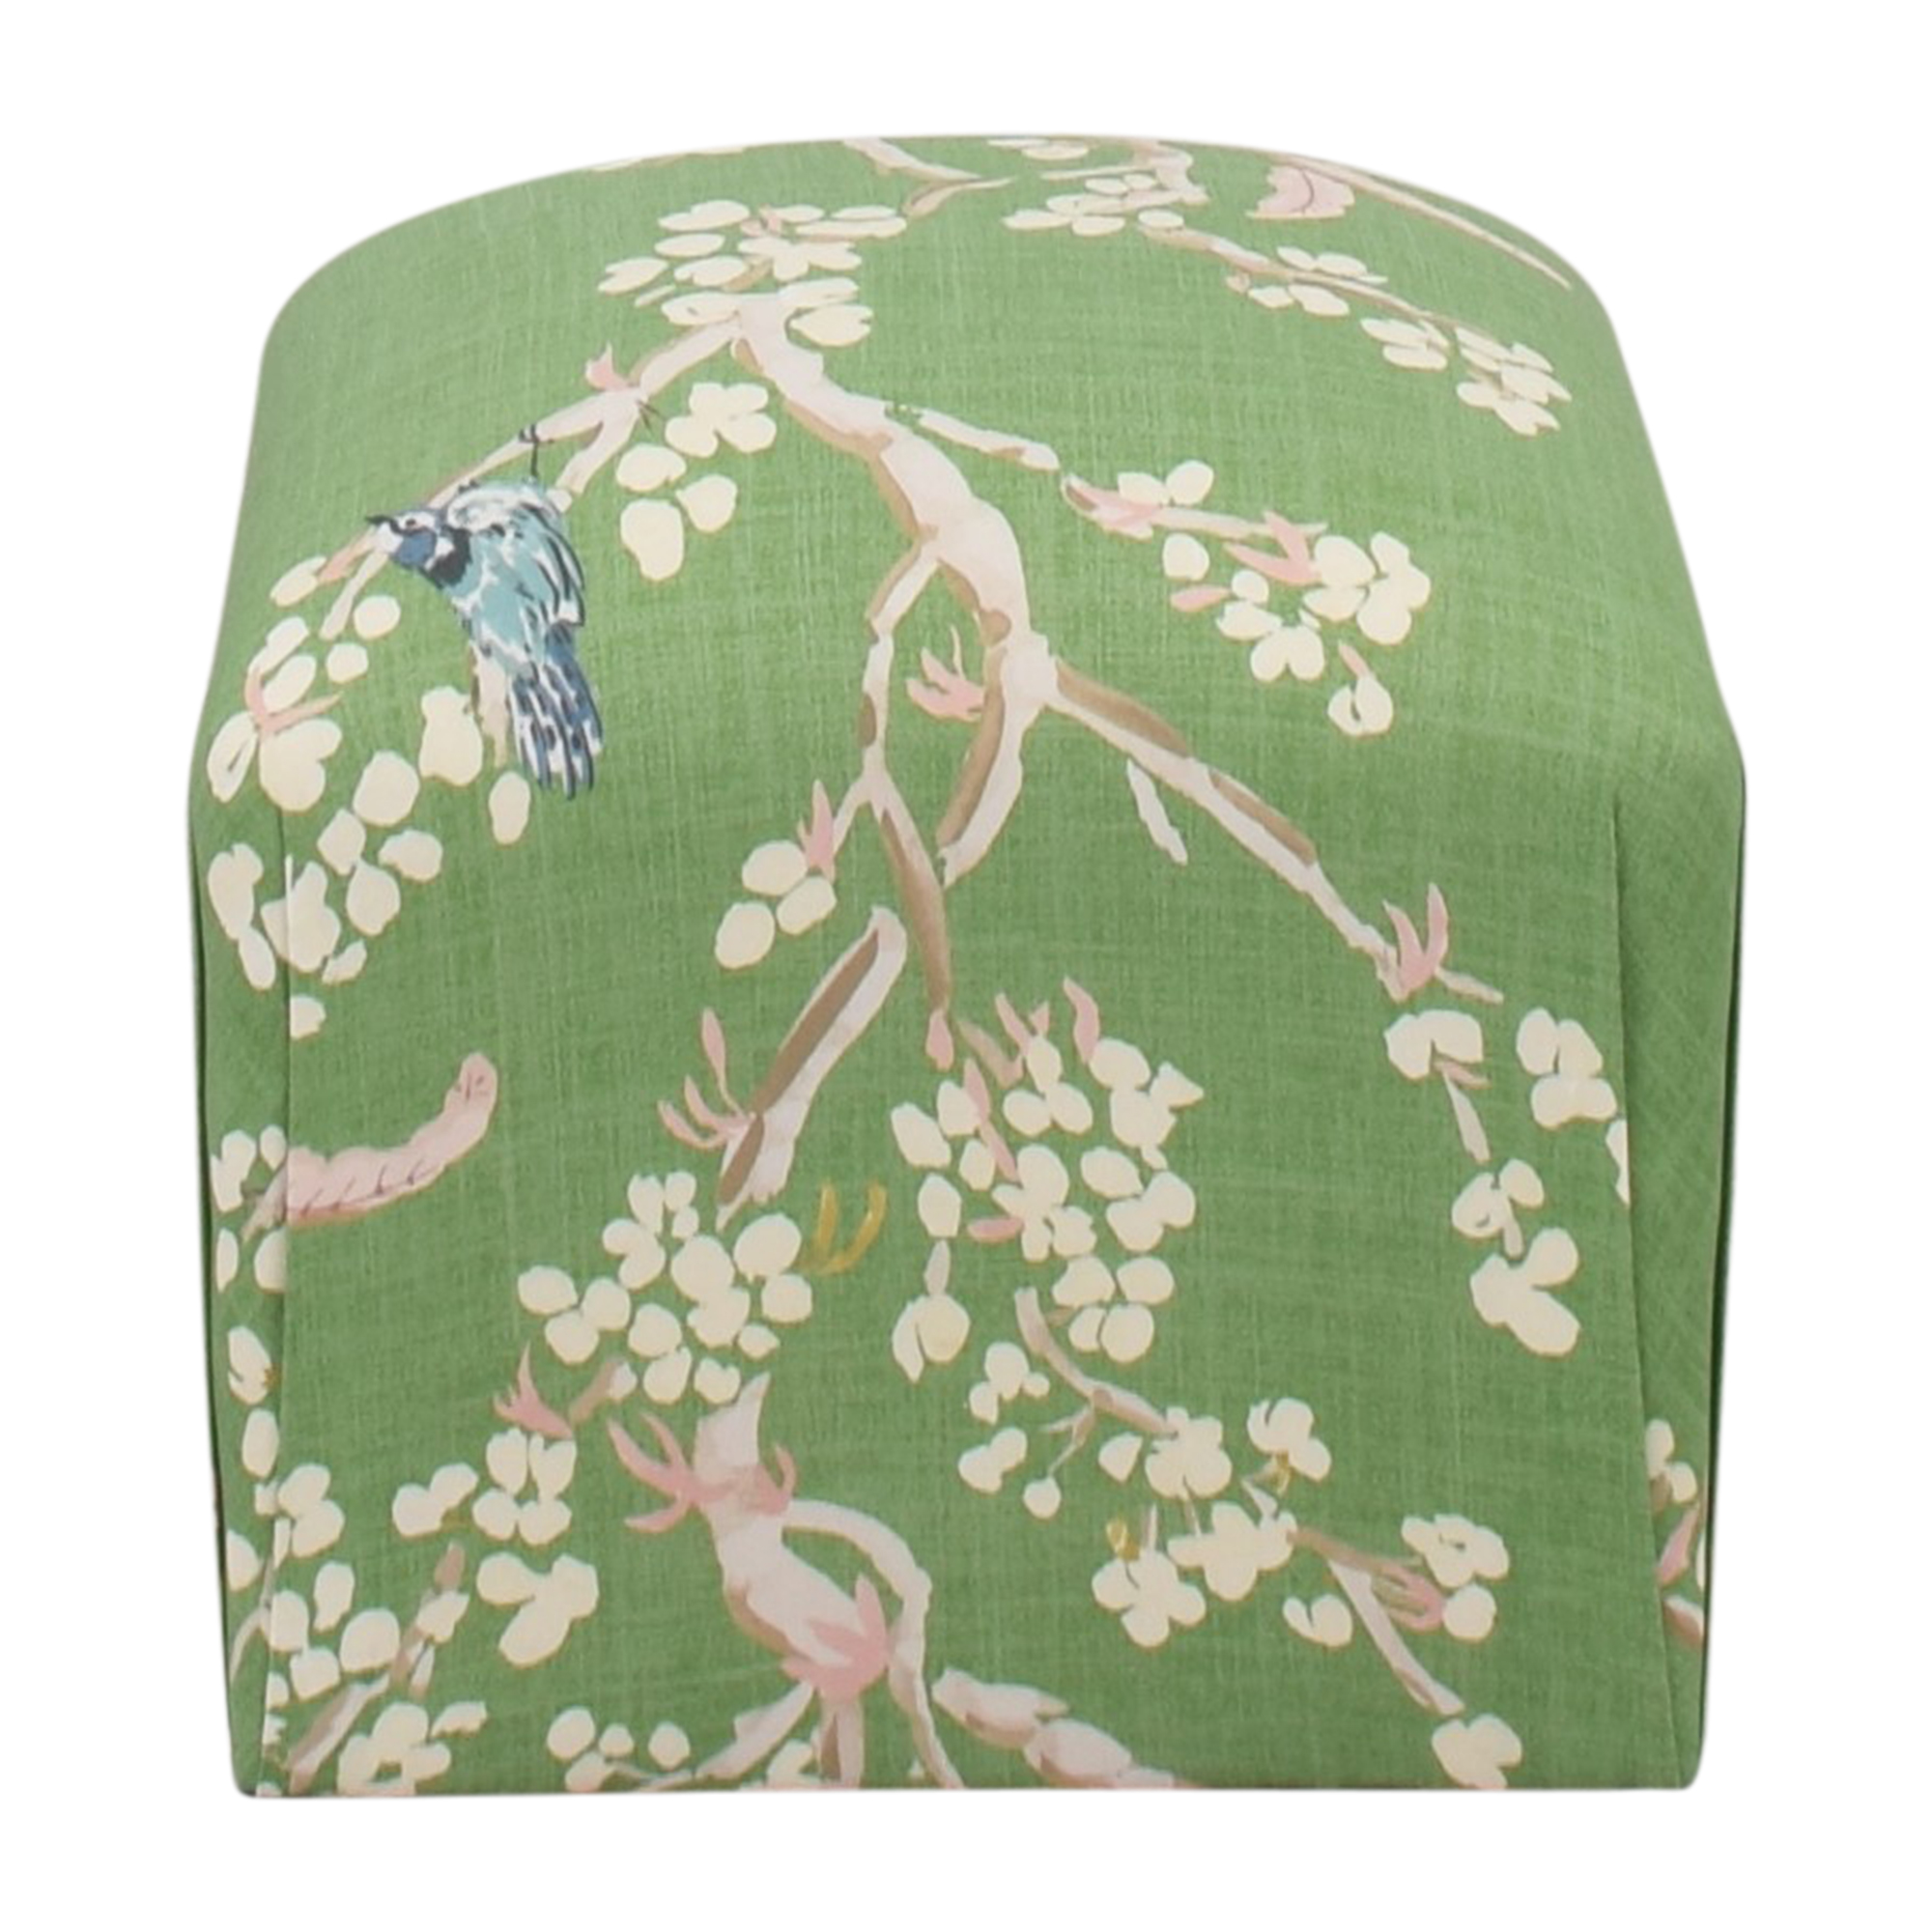 The Inside Floral Deco Ottoman The Inside